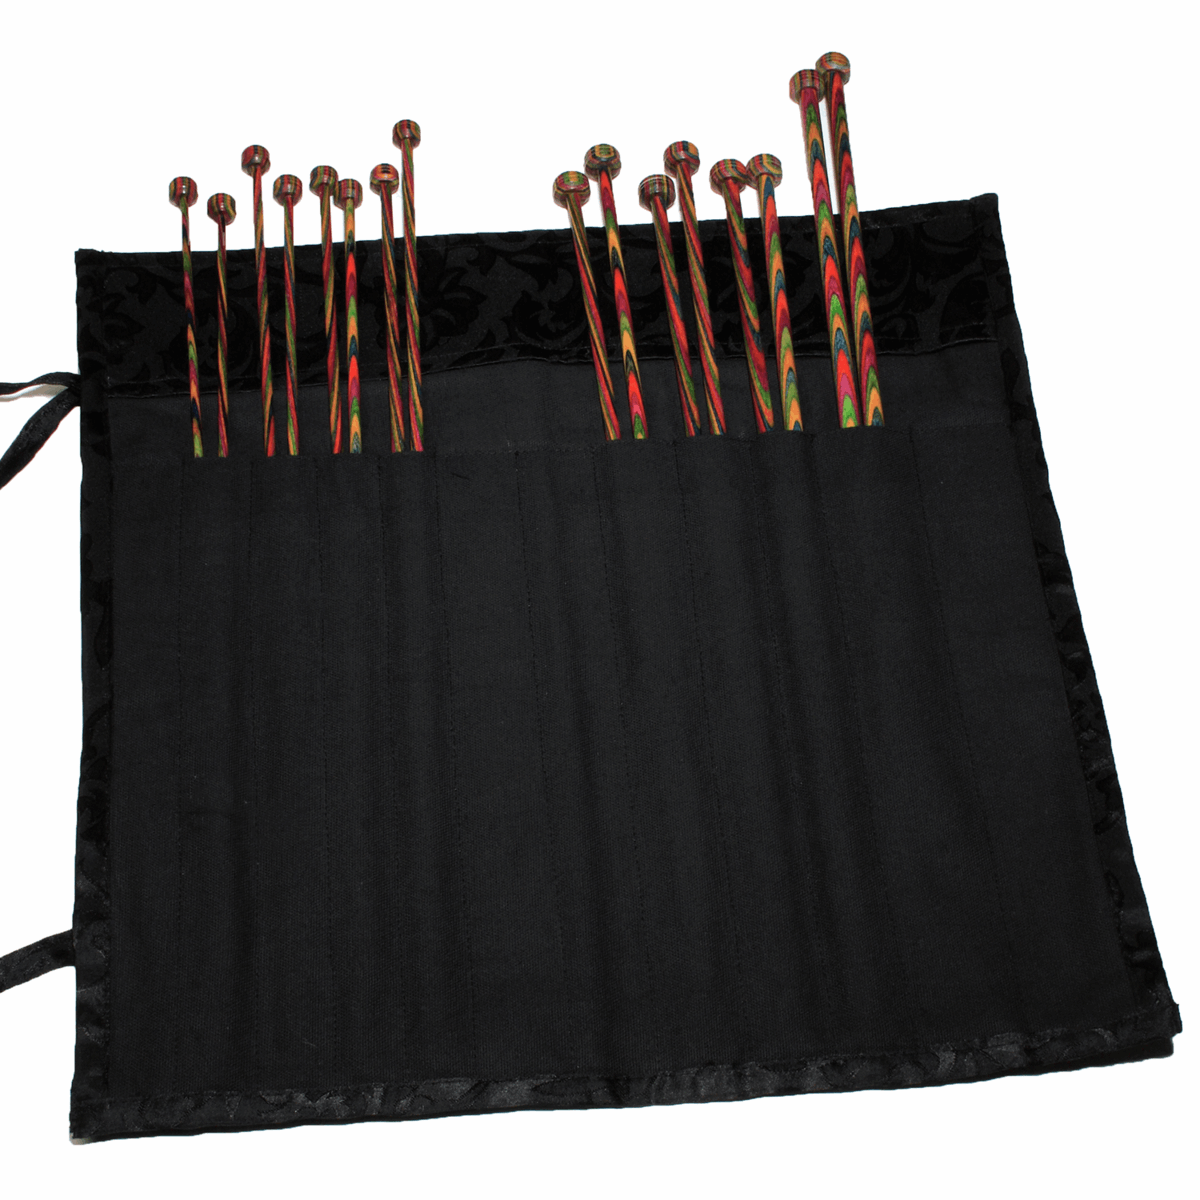 Picture of Fabric Knitting Pin Case: Black Jacquard Wrap-Around: 35cm